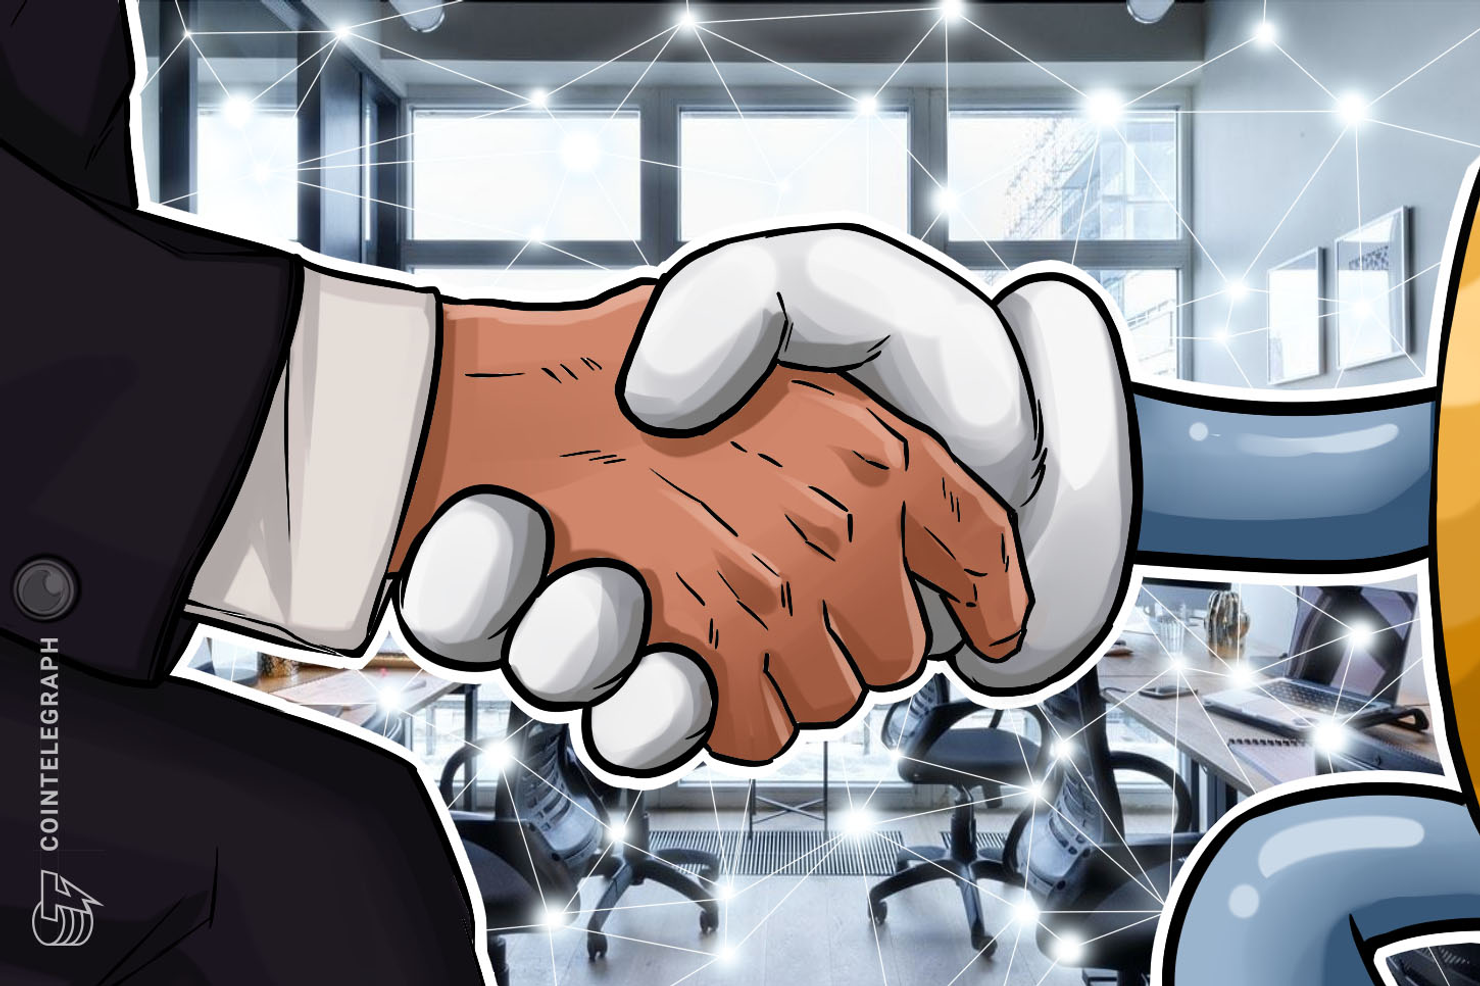 Ripple Partners With World's Third-Largest Fintech Firm Finastra